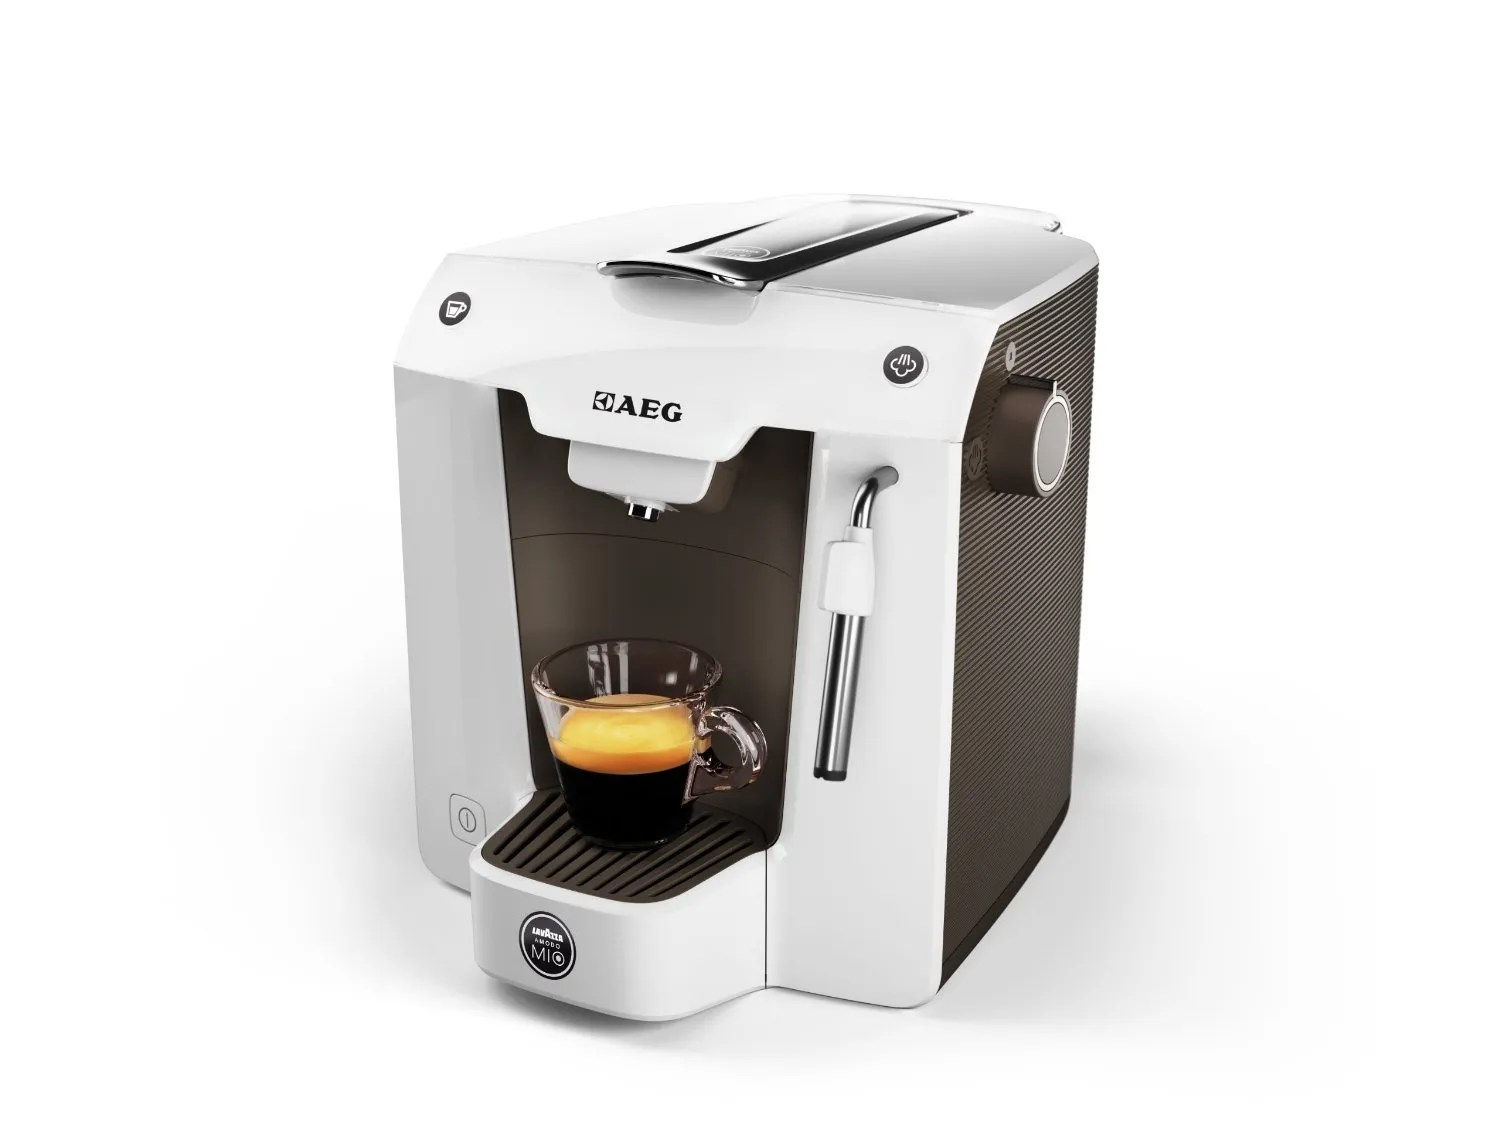 AEG A Modo Mio Favola Lavazza Espresso Coffee Machine 0.9 Litre 1300 Watt Best Cheap Single Cup Coffee Maker